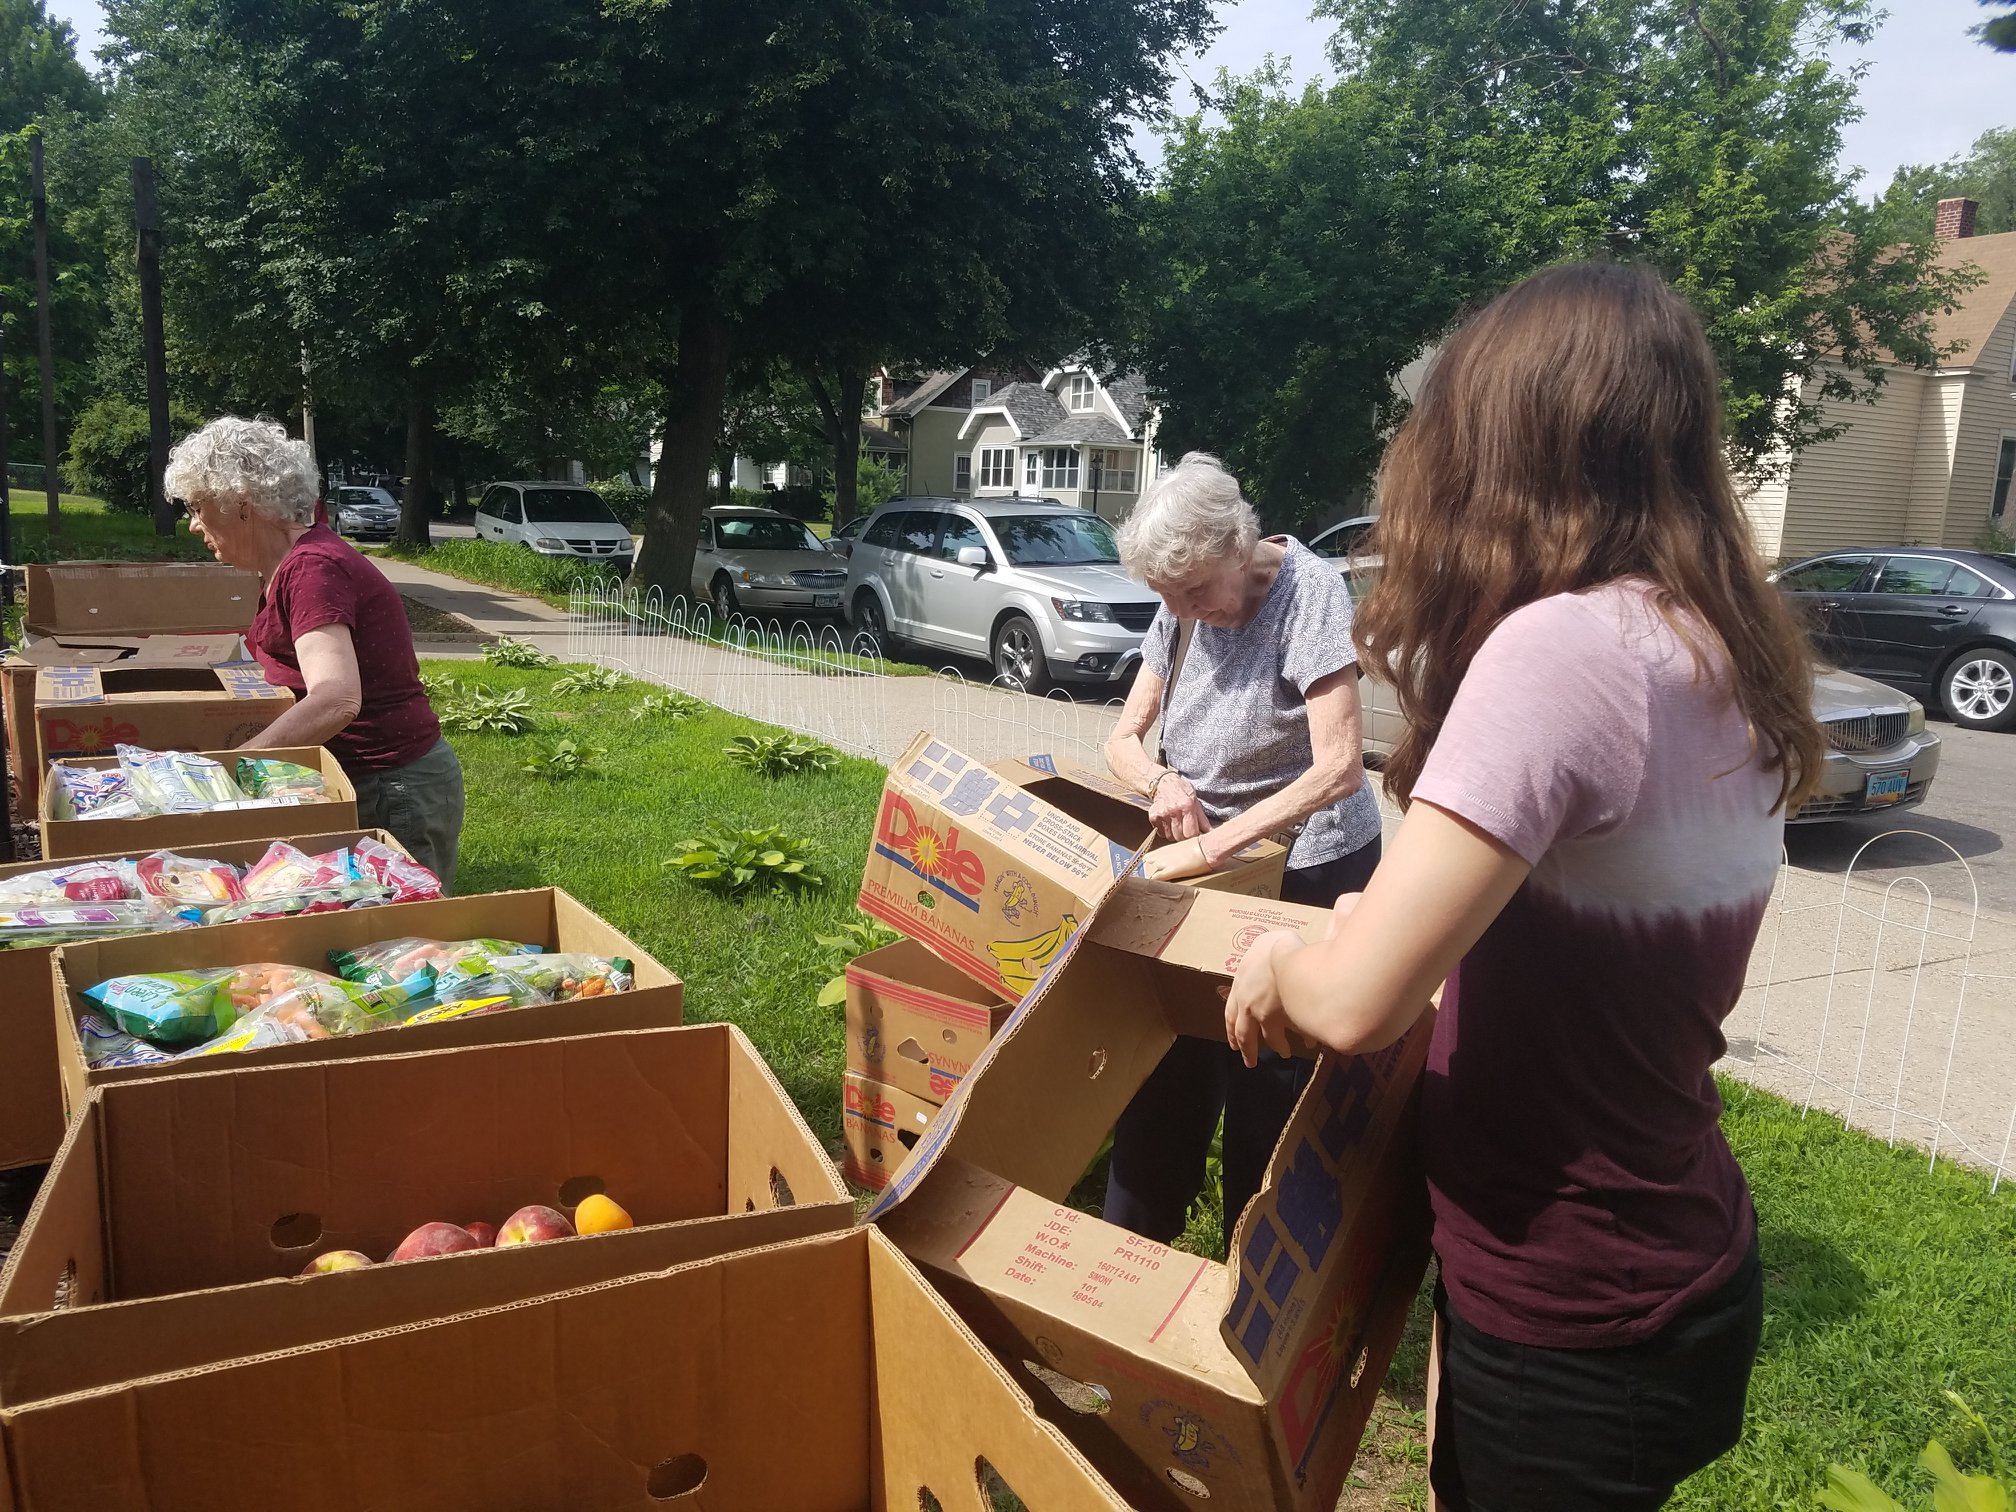 Food is sorted for distribution on site, using every available surface - even the retaining walls outside.